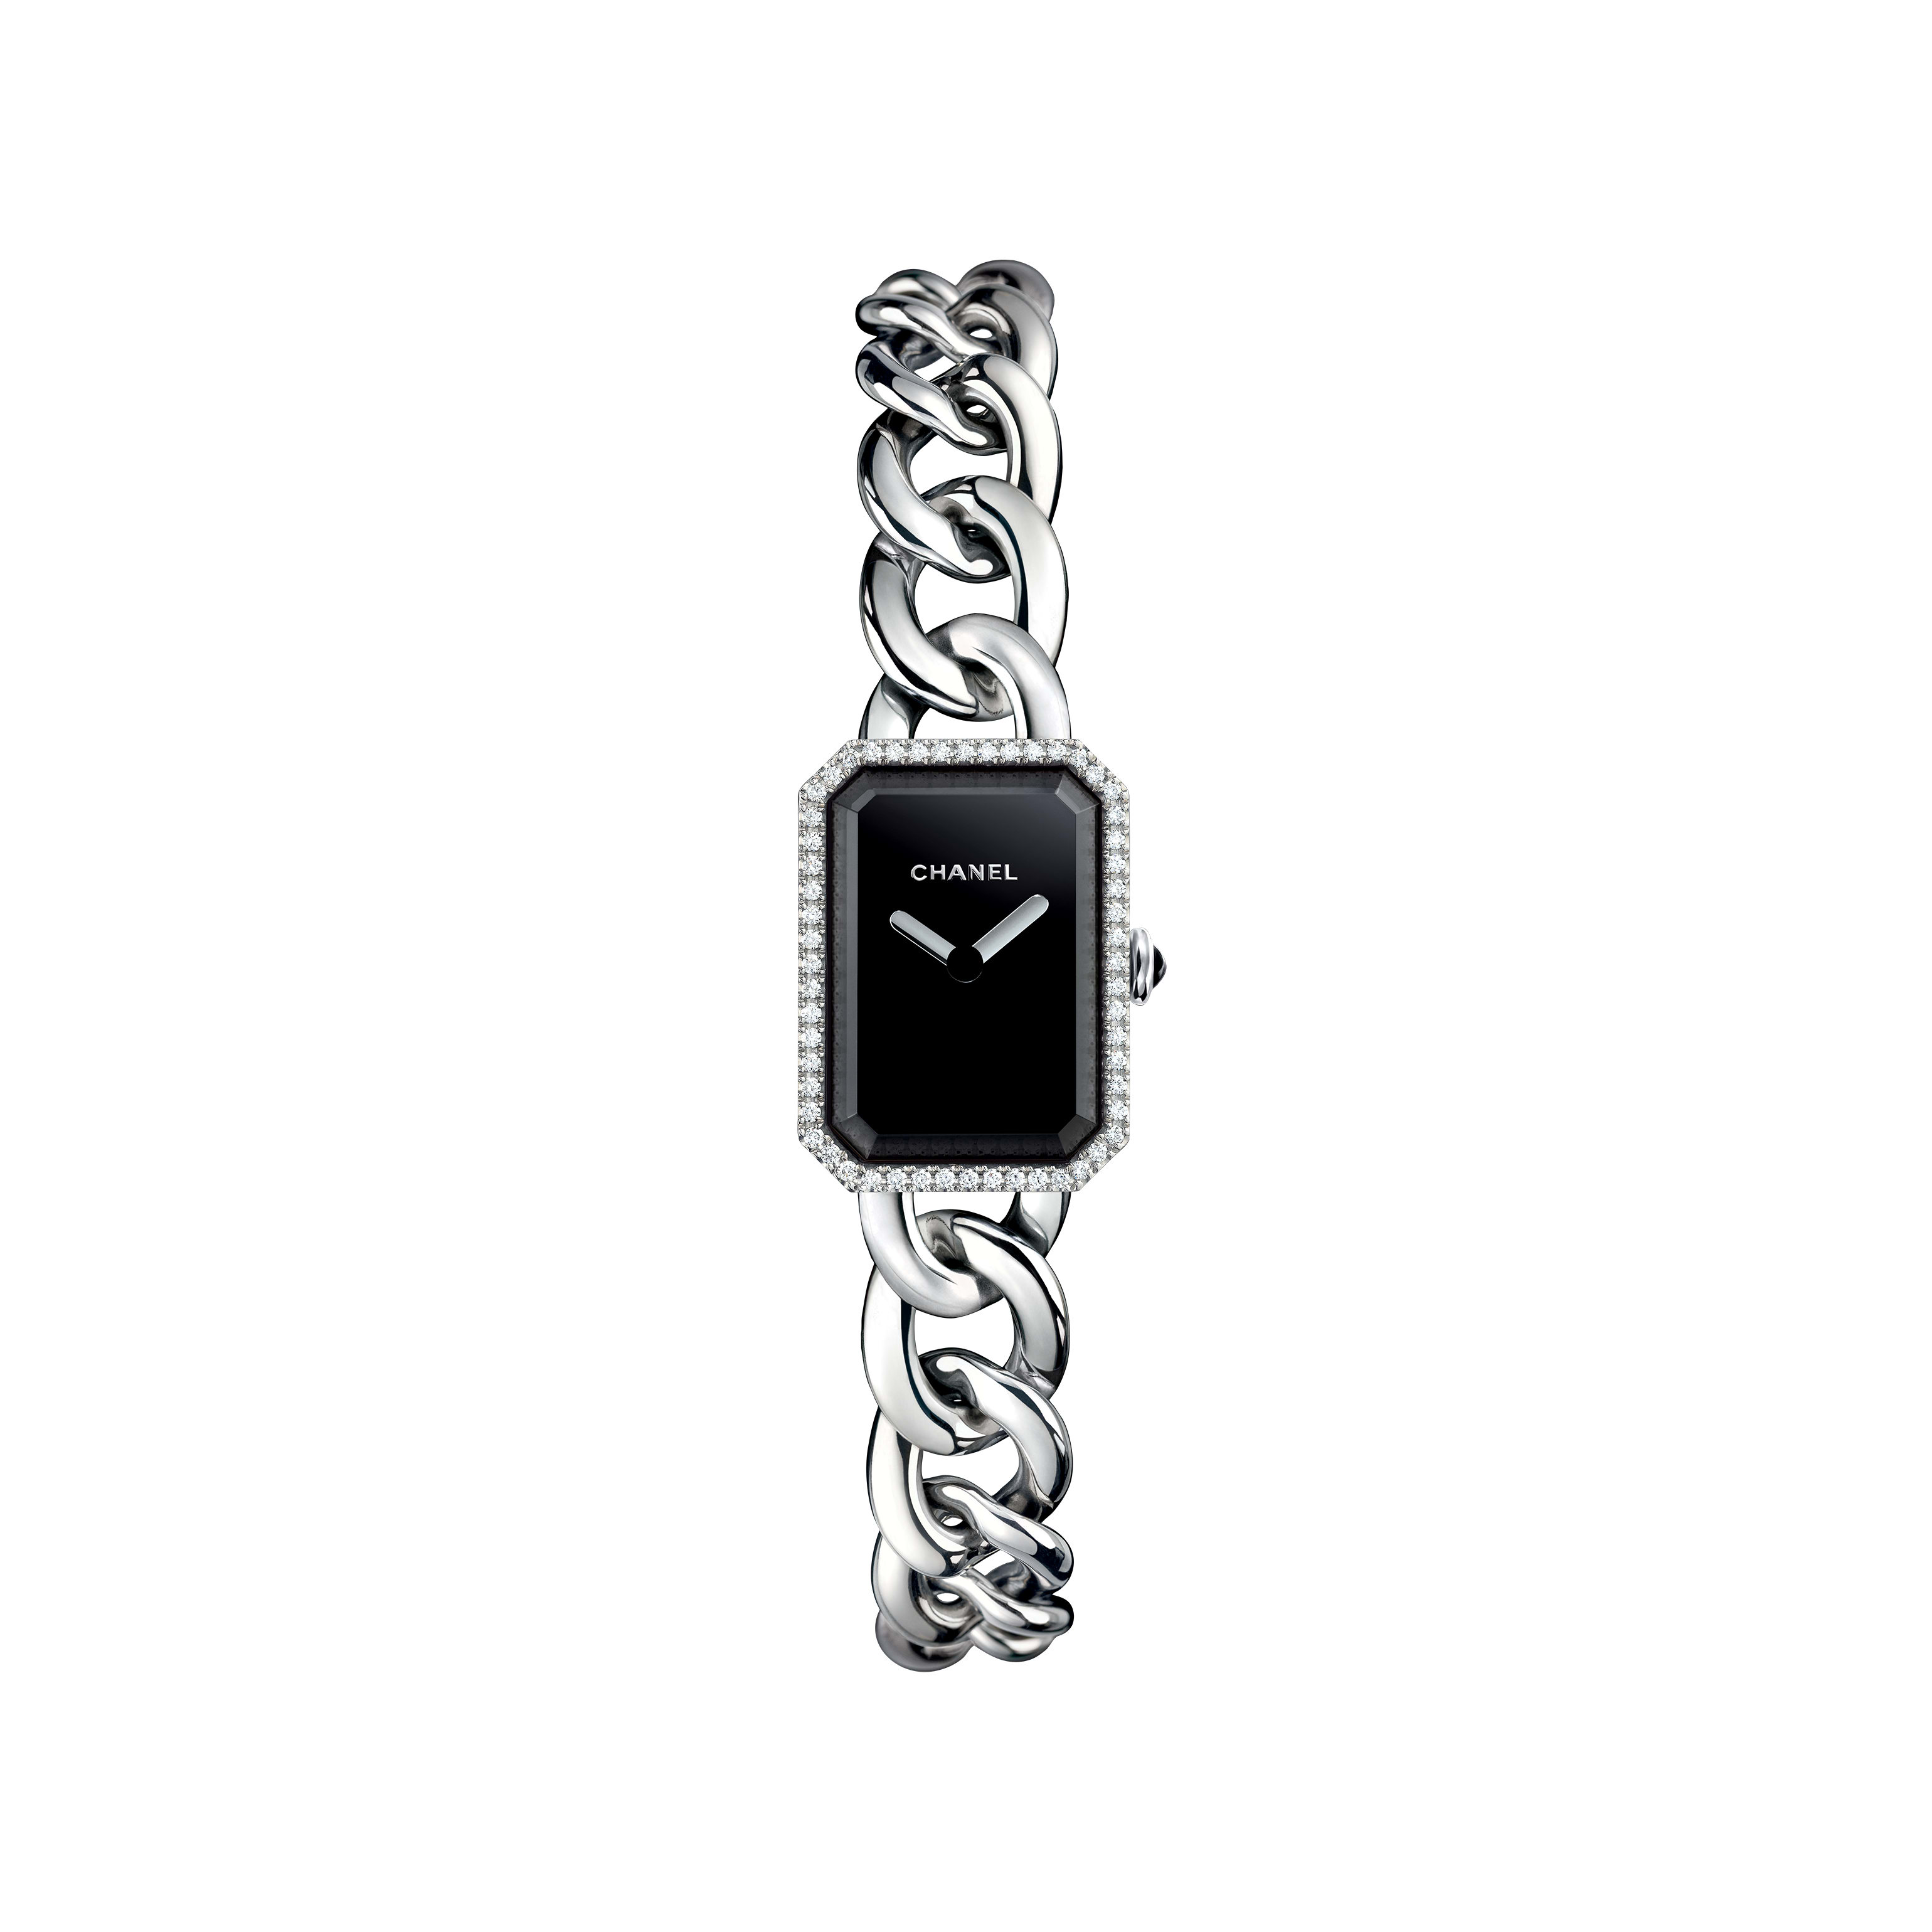 Première Chaîne - Small version, steel and diamonds, black dial - CHANEL - Default view - see standard sized version